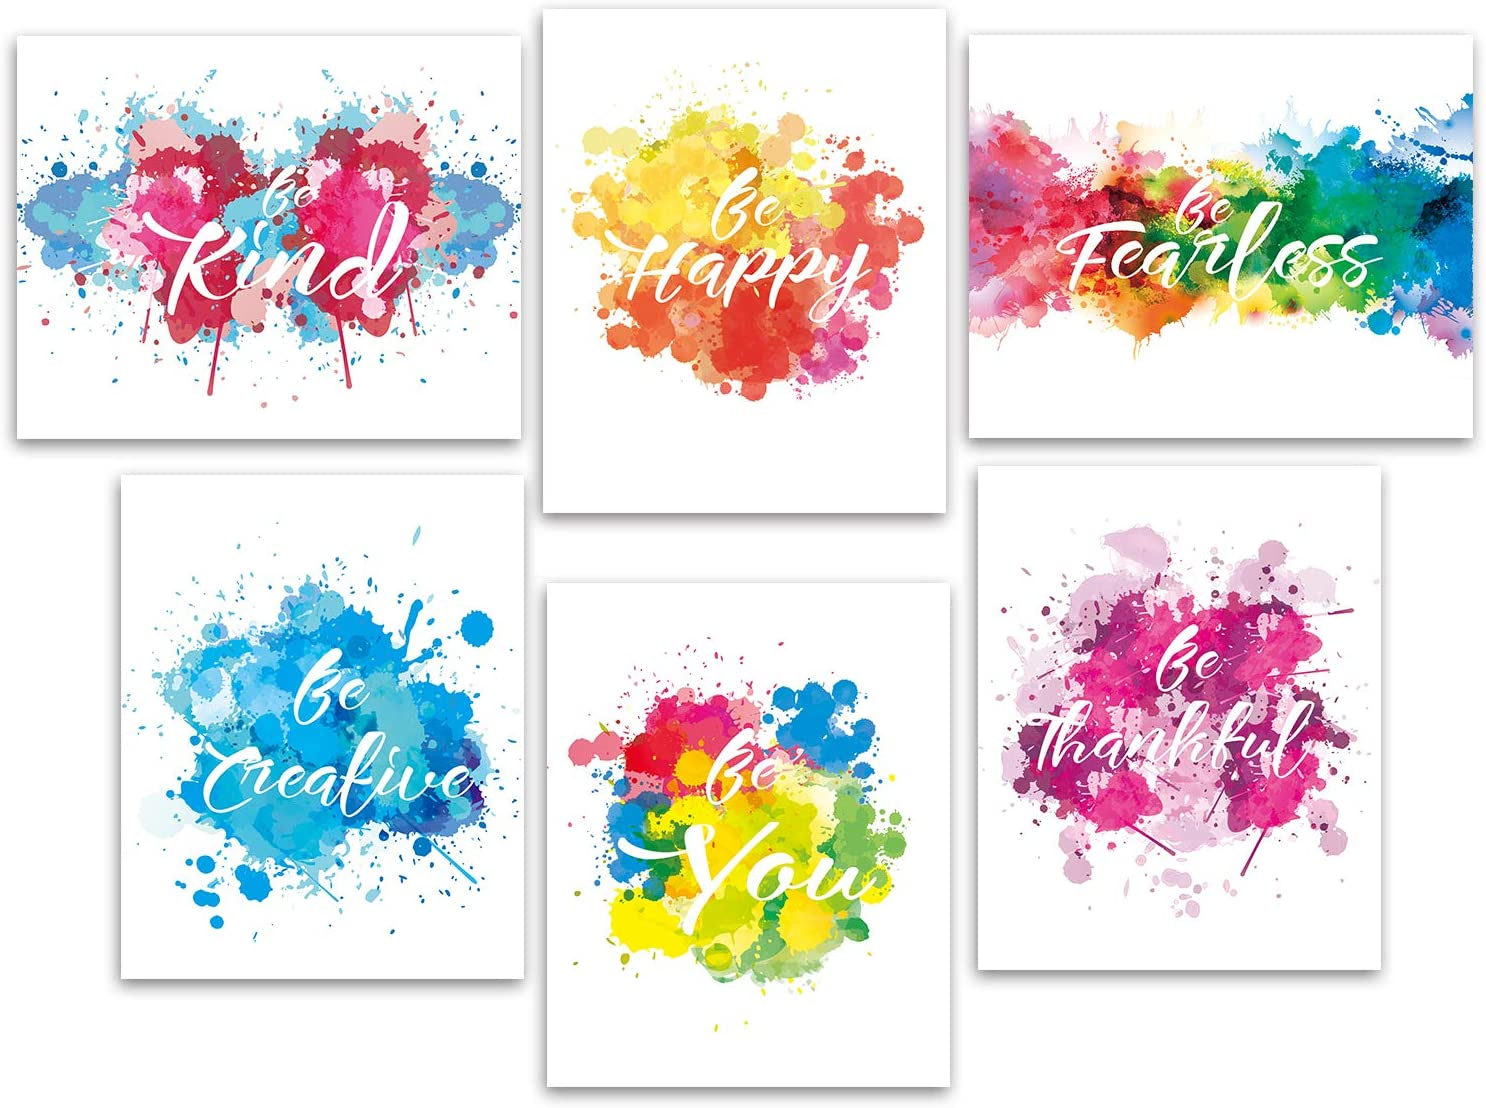 Motivational Colorful Wall Art Inspirational Quotes Art Prints,Picture Abstract Canvas Wall Decor for Office Girl Room Home Decor 6 pcs No Frame